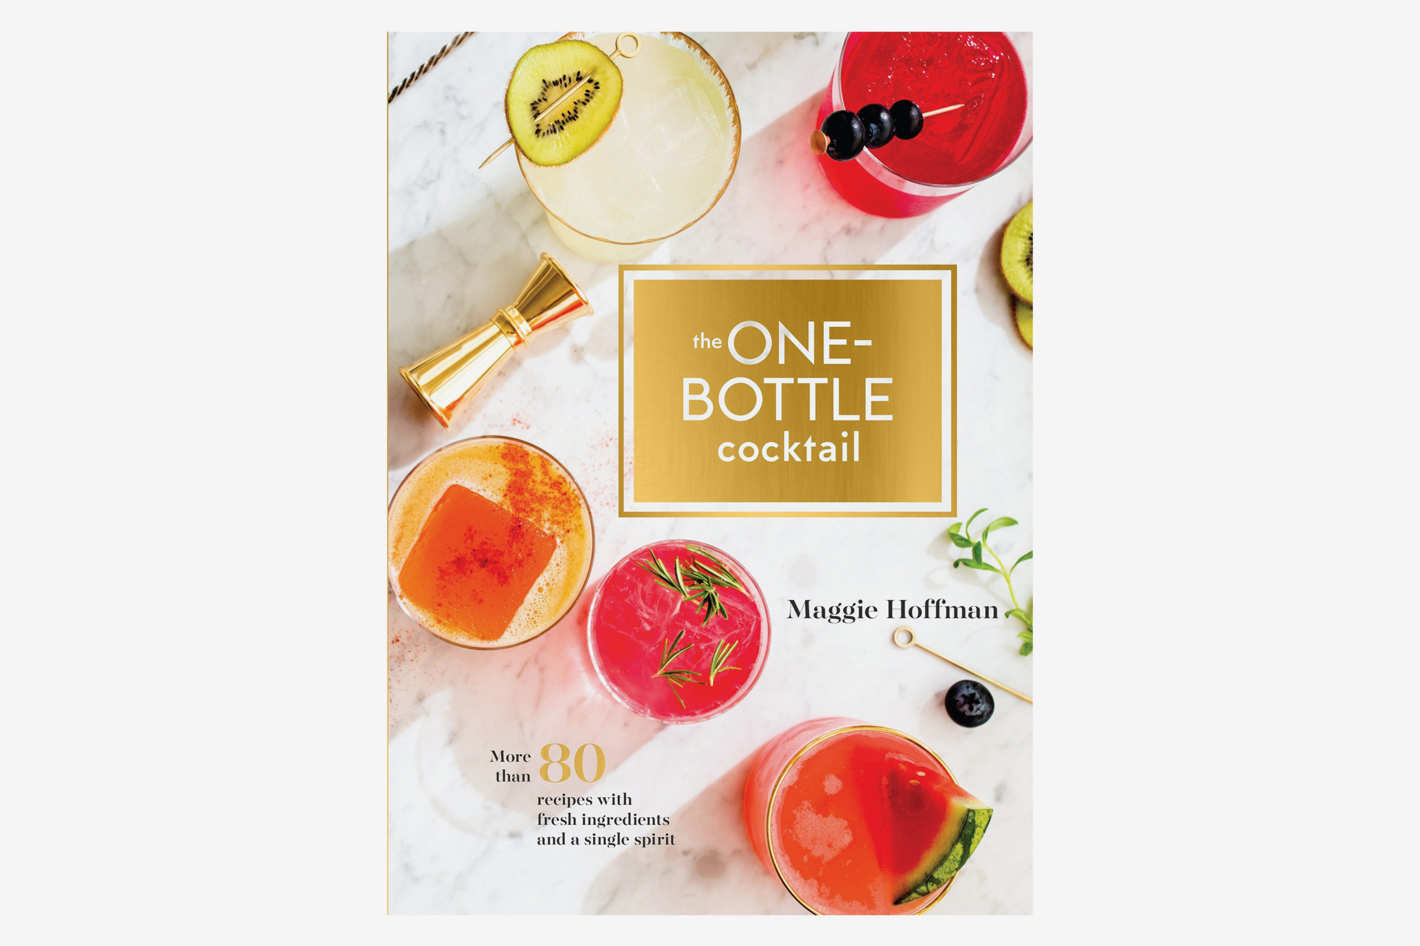 <em>The One-Bottle Cocktail: More Than 80 Recipes With Fresh Ingredients and a Single Spirit</em>, by Maggie Hoffman